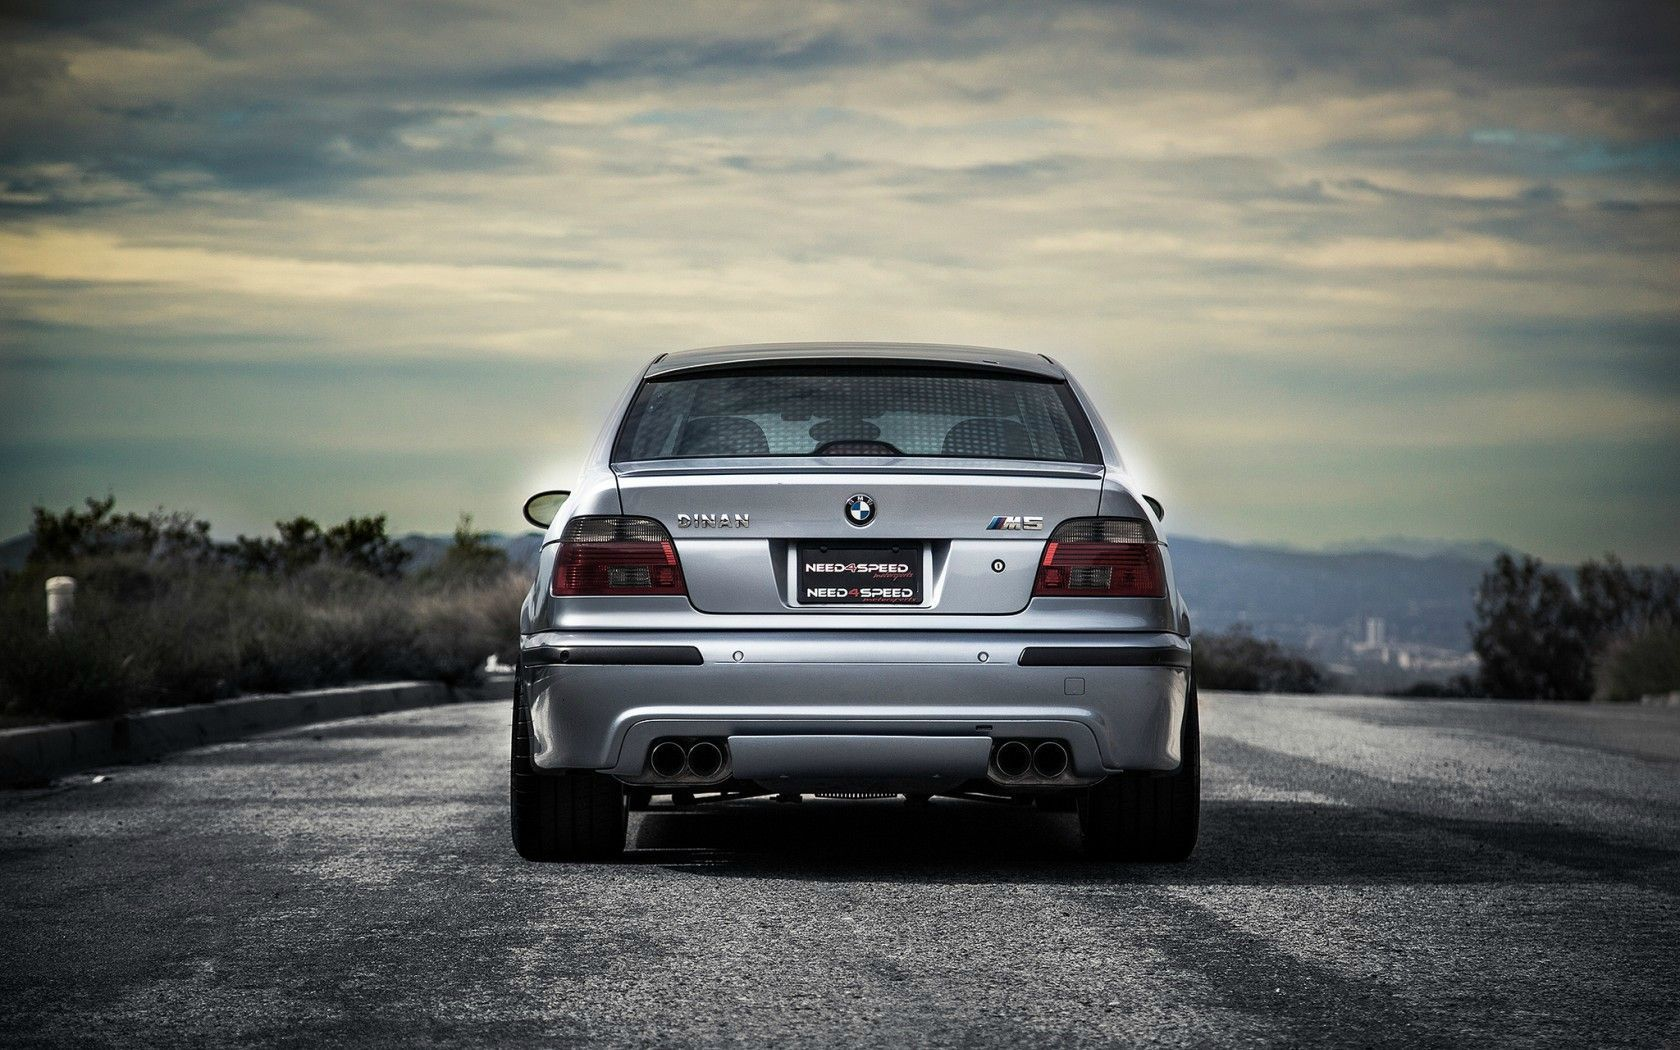 BMW E39 Wallpaper 03 - [1680x1050]